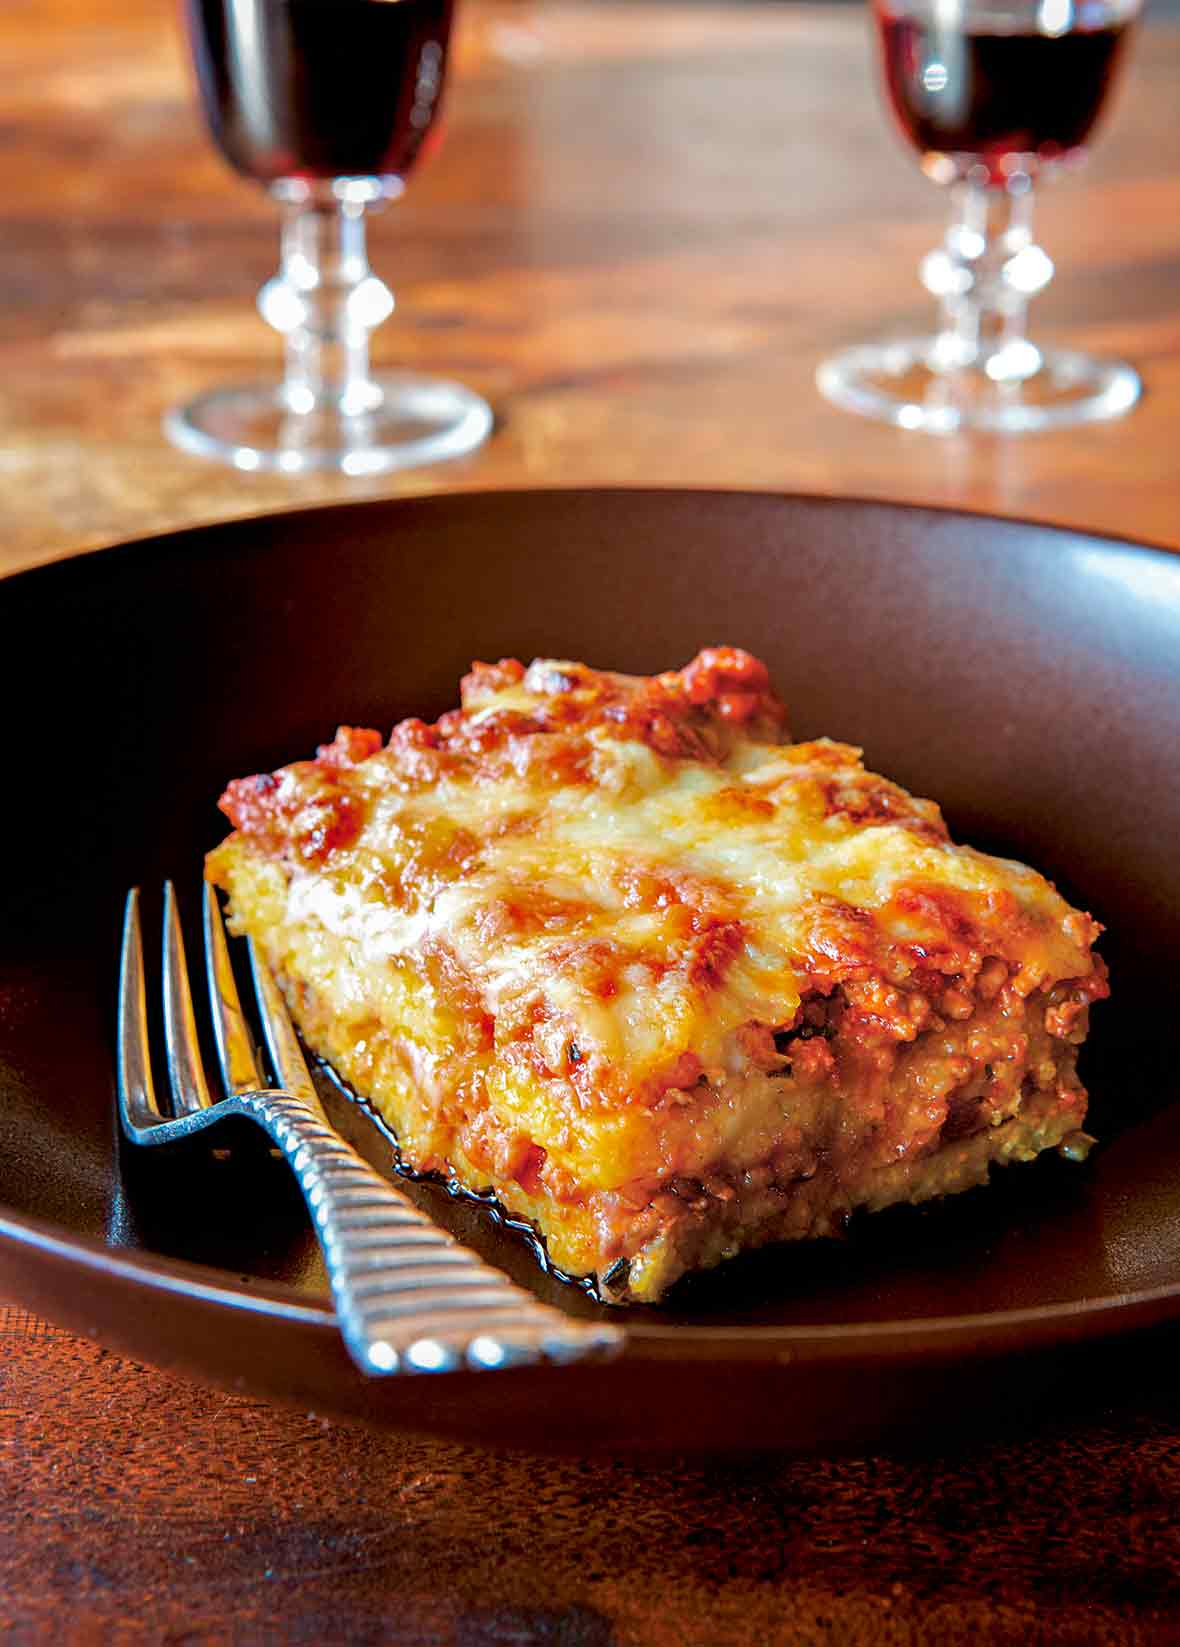 A square of polenta with layers of meat sauce on a plate with a fork, two glasses of wine